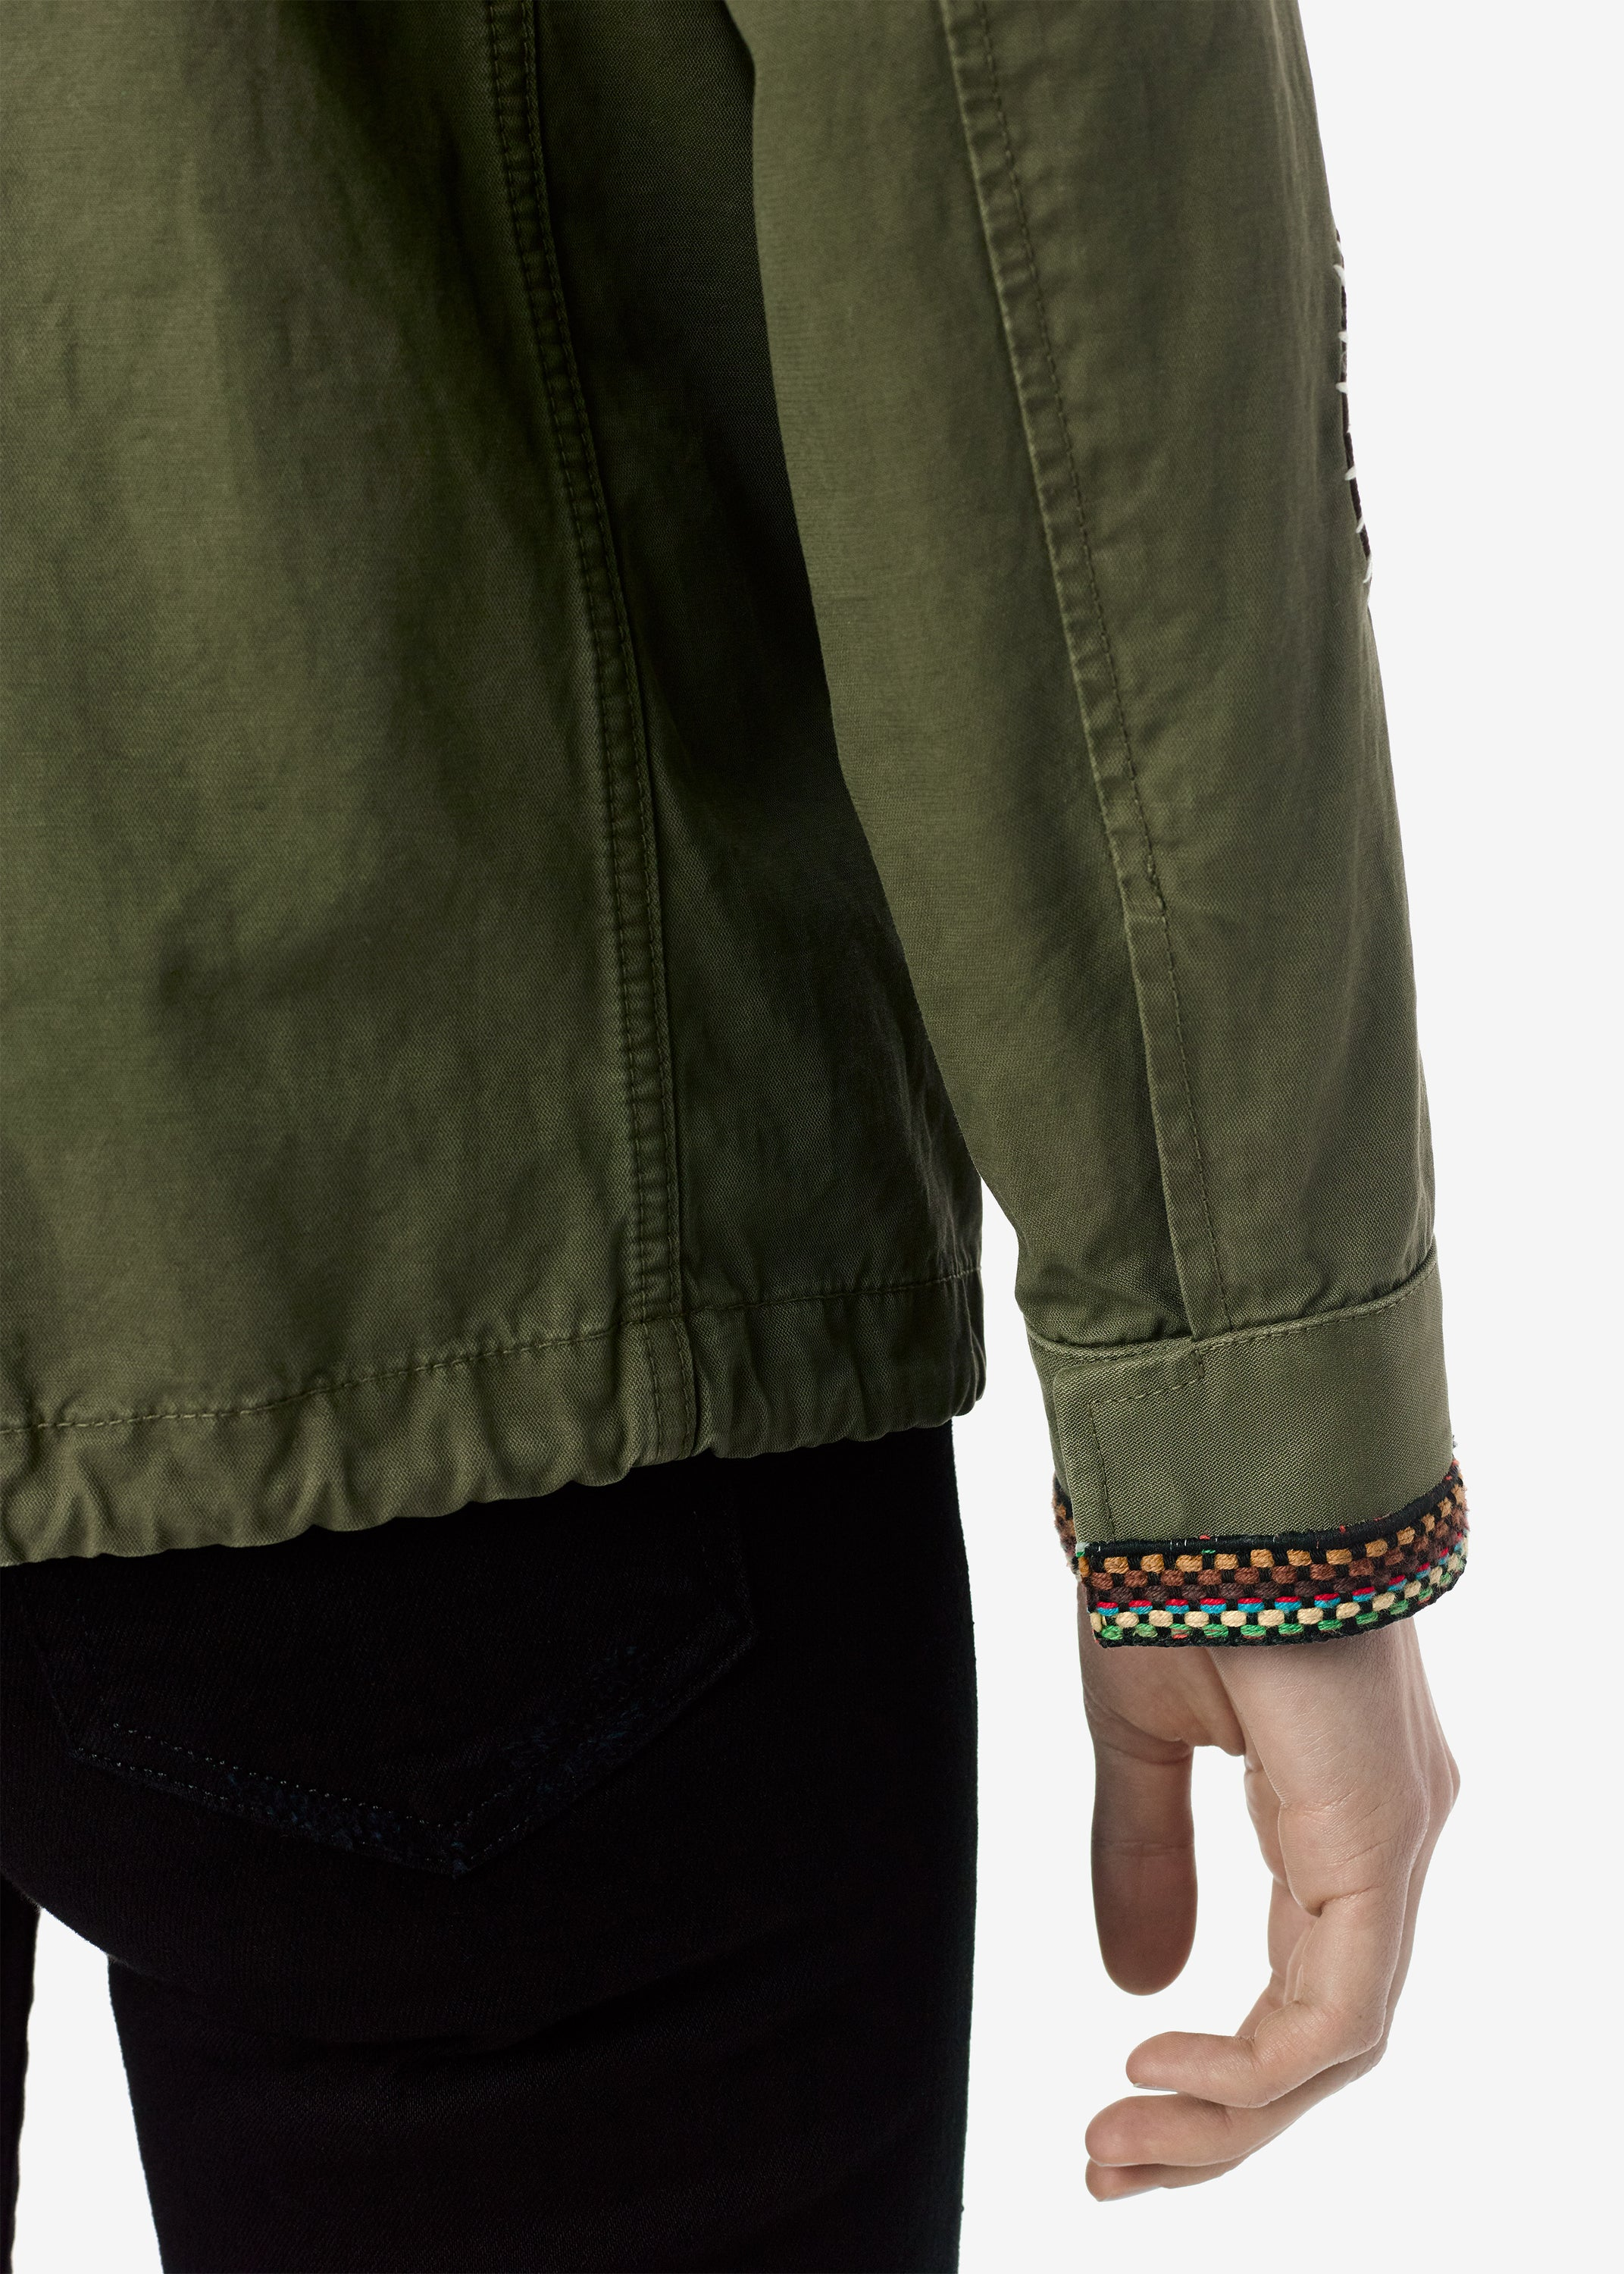 m65-military-trench-military-green-image-7